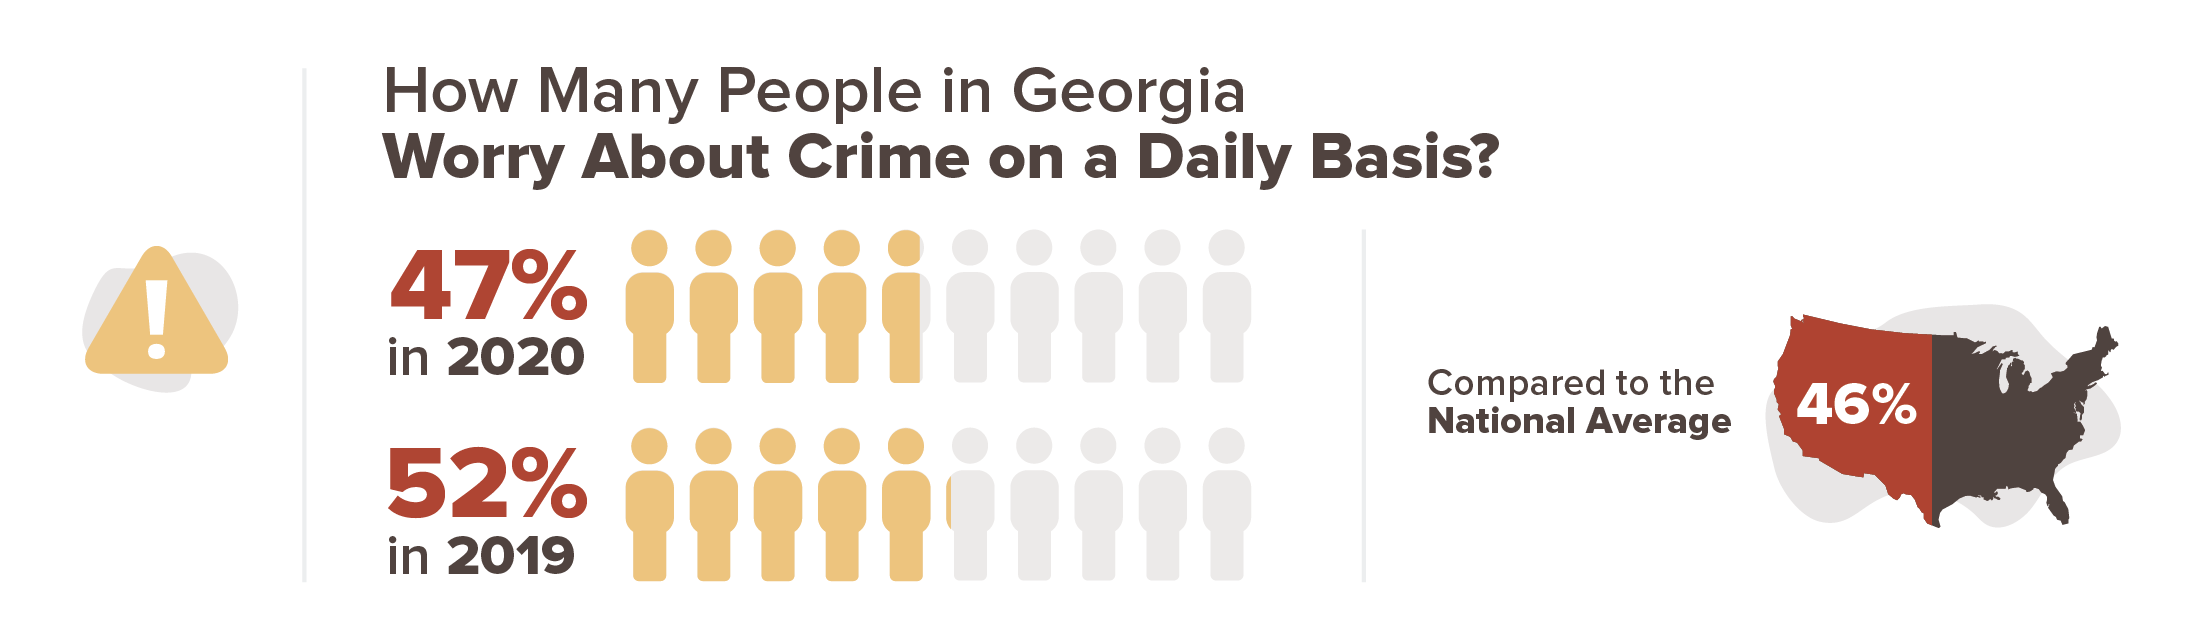 Georgia crime stats infographic